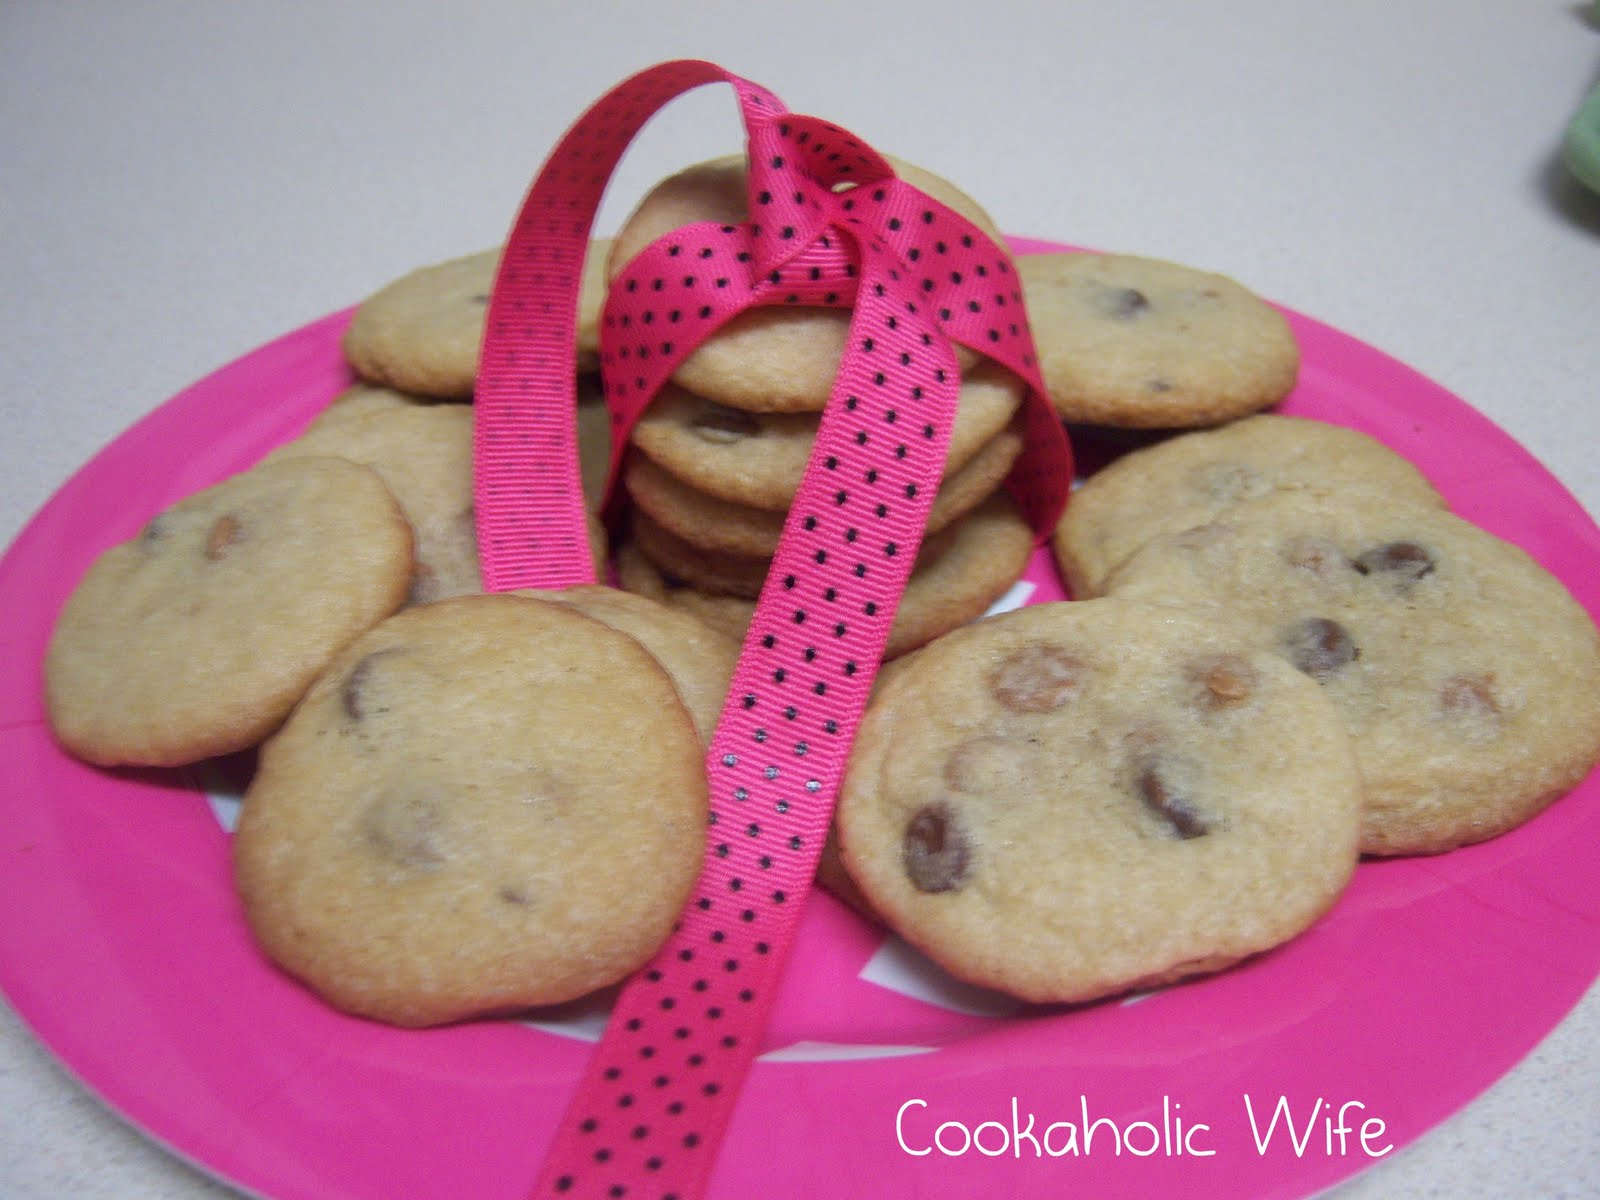 Hurricane Cookies: Peanut Butter Chocolate Chip - Cookaholic Wife